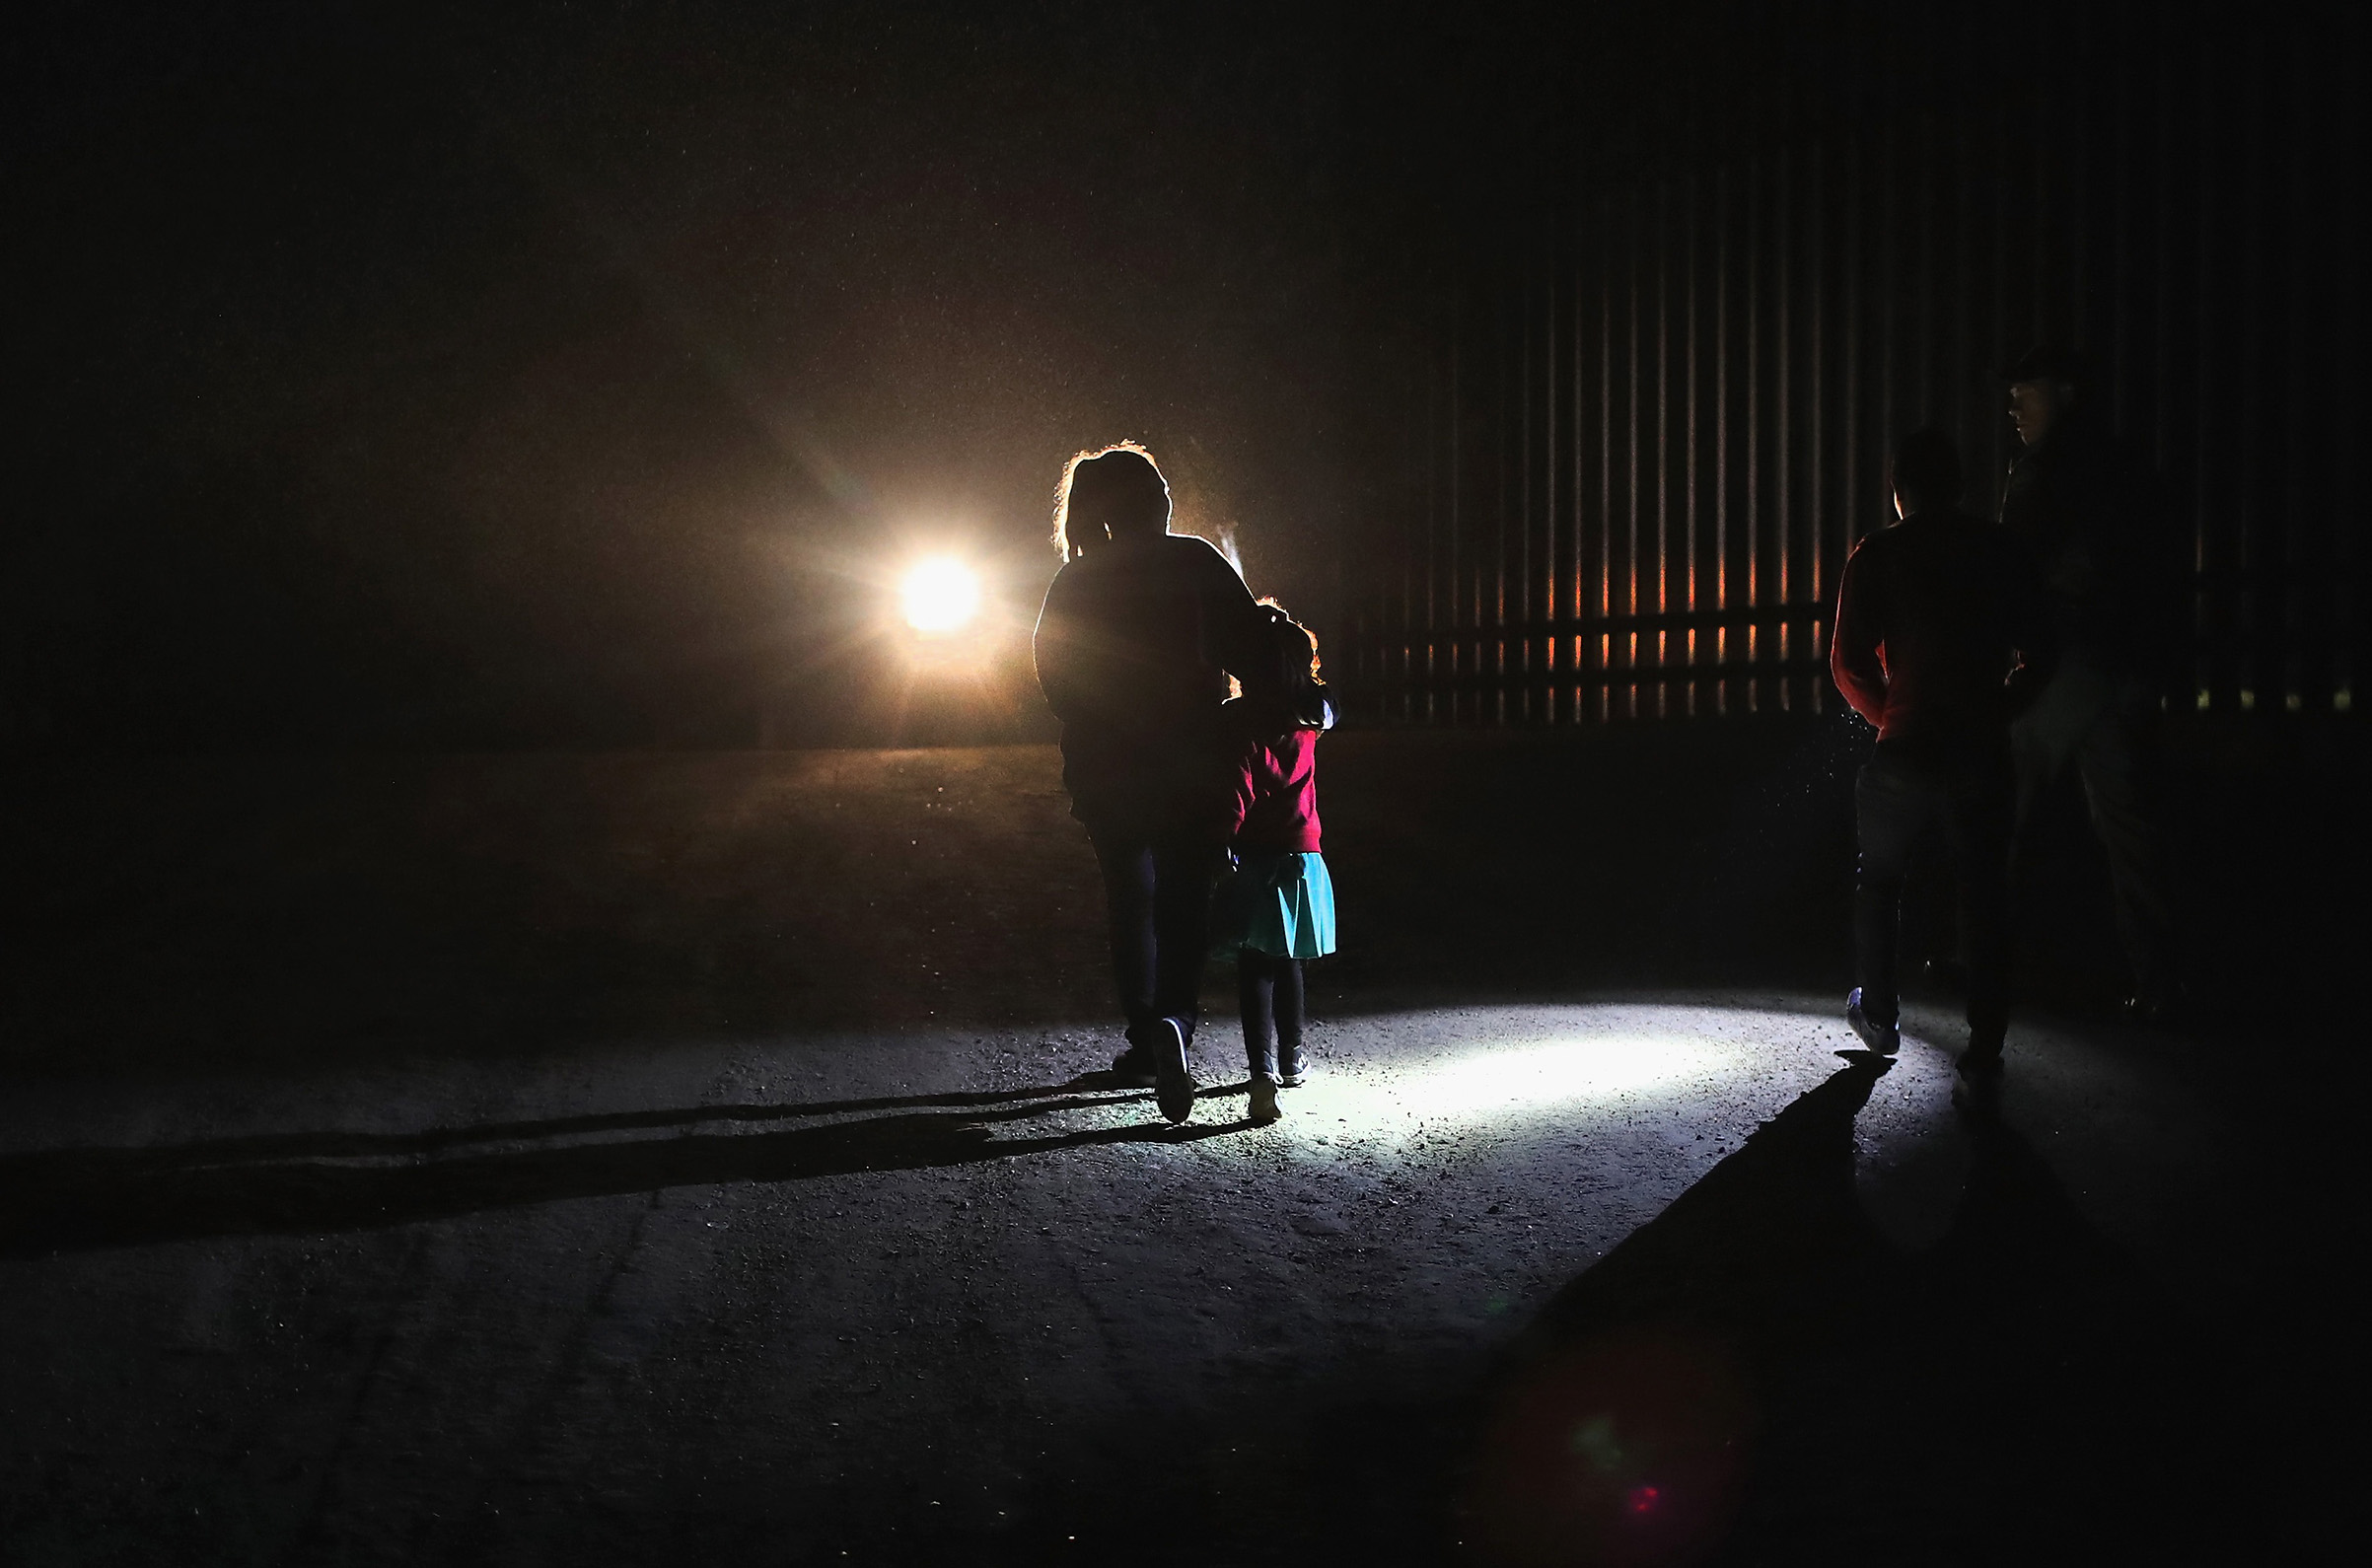 A Honduran mother walks with her children next to the U.S.-Mexico border fence as they turned themselves in to Border Patrol agents on February 22, 2018 near Penitas, Texas. Thousands of Central American families continue to enter the U.S., most seeking political asylum from violence in their home countries. The Rio Grande Valley has the highest number of undocumented immigrant crossings and narcotics smuggling of the entire U.S.-Mexico border.